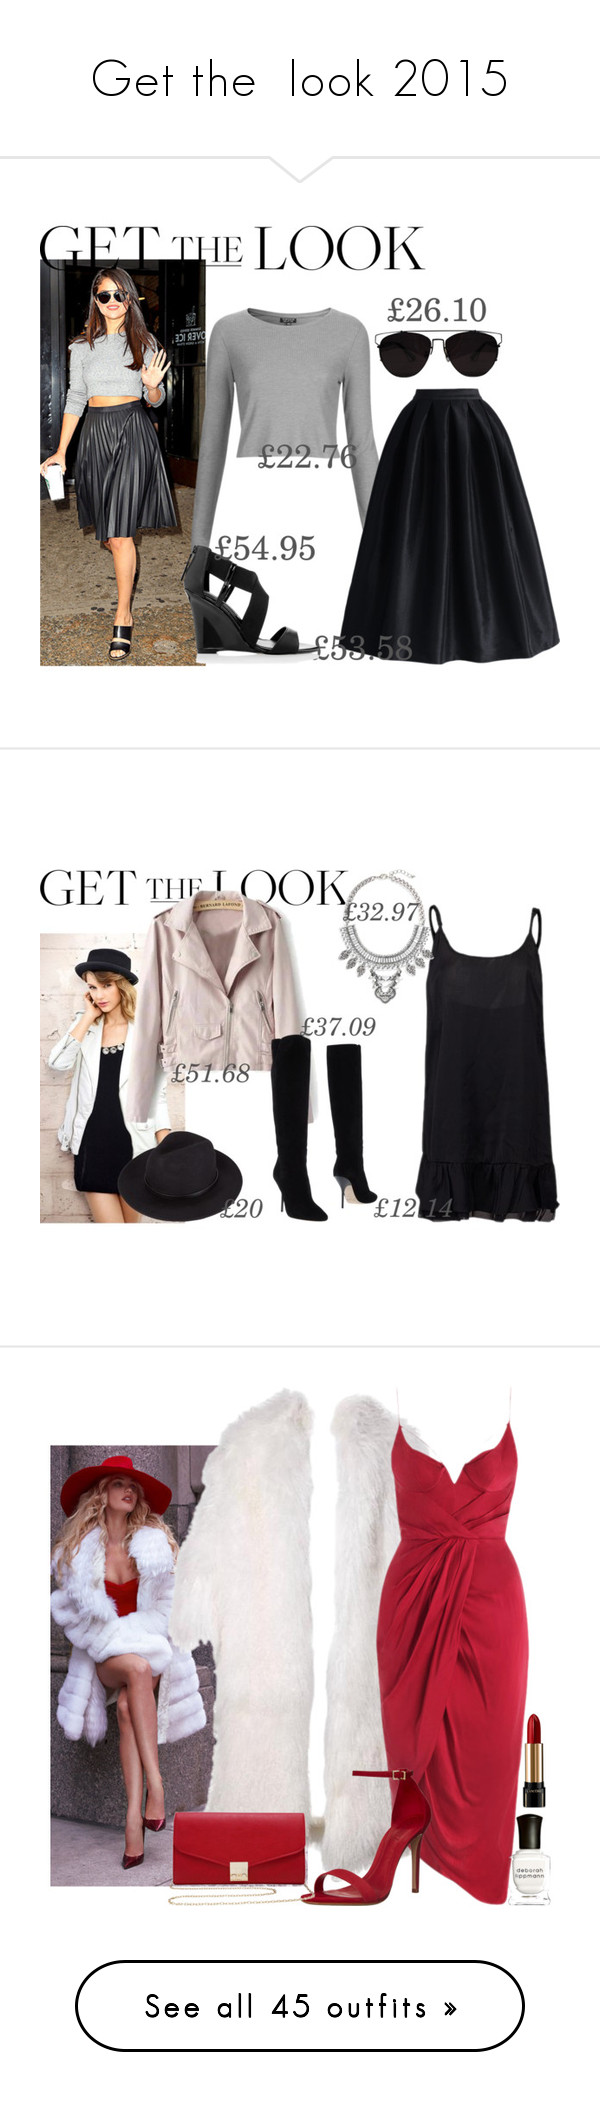 """Get the  look 2015"" by fashion-nova ❤ liked on Polyvore featuring Topshop, Chicwish, White House Black Market, Retrò, Jimmy Choo, Leith, Zimmermann, Schutz, M&Co and Deborah Lippmann"